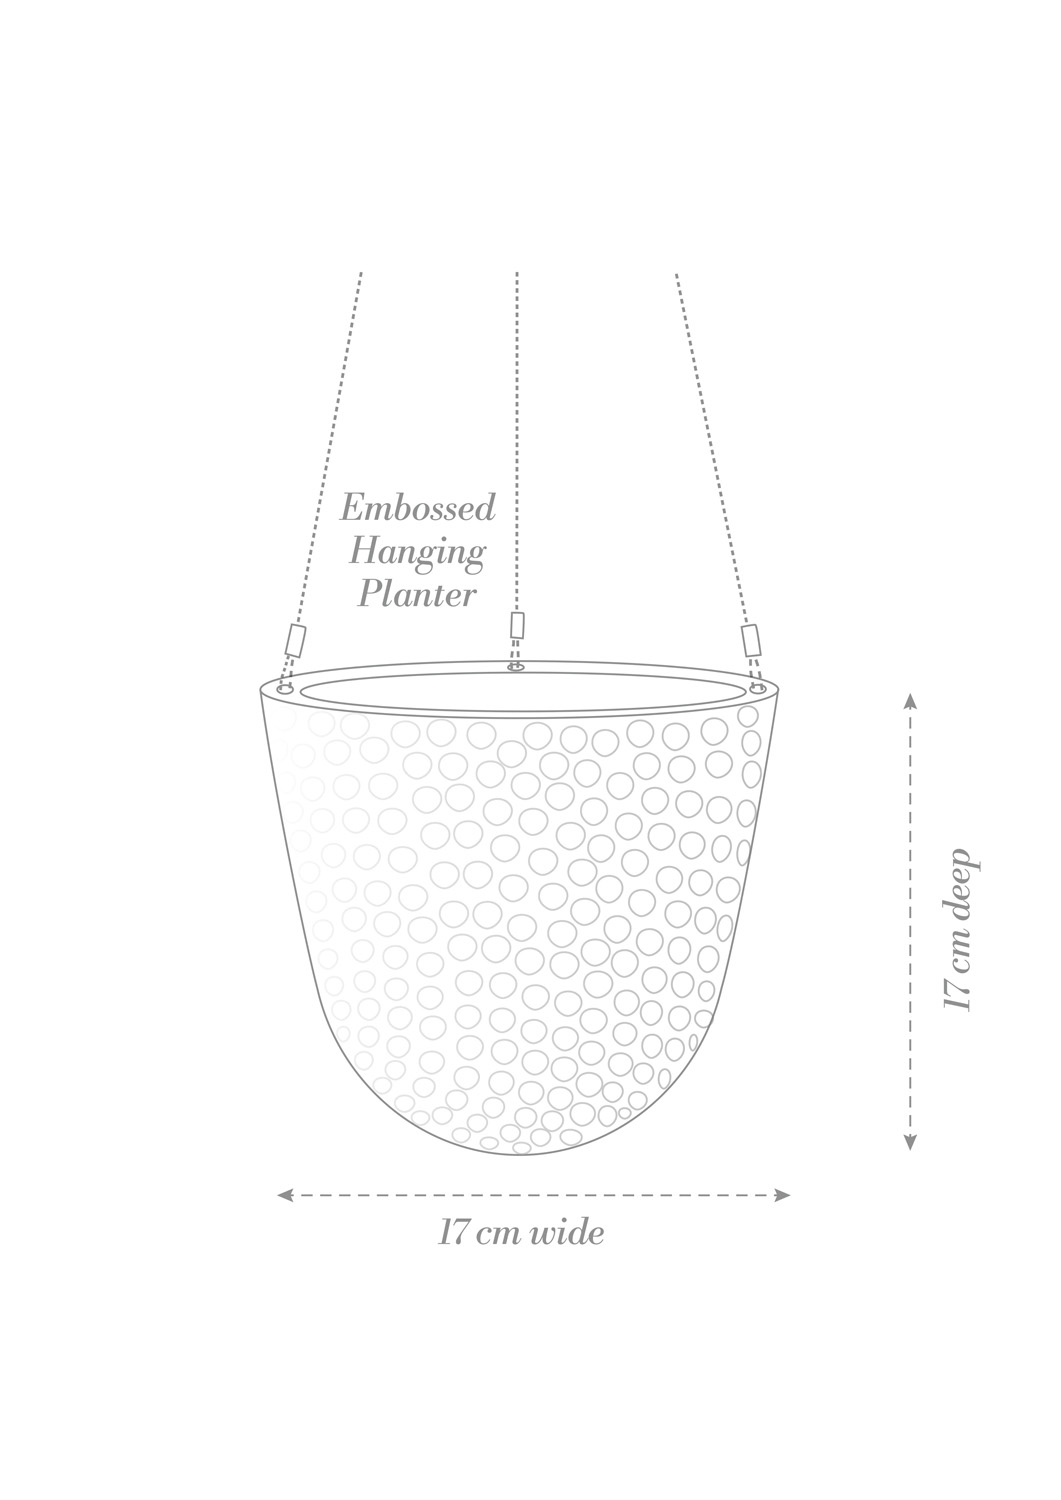 Embossed Hanging Planter Product Diagram